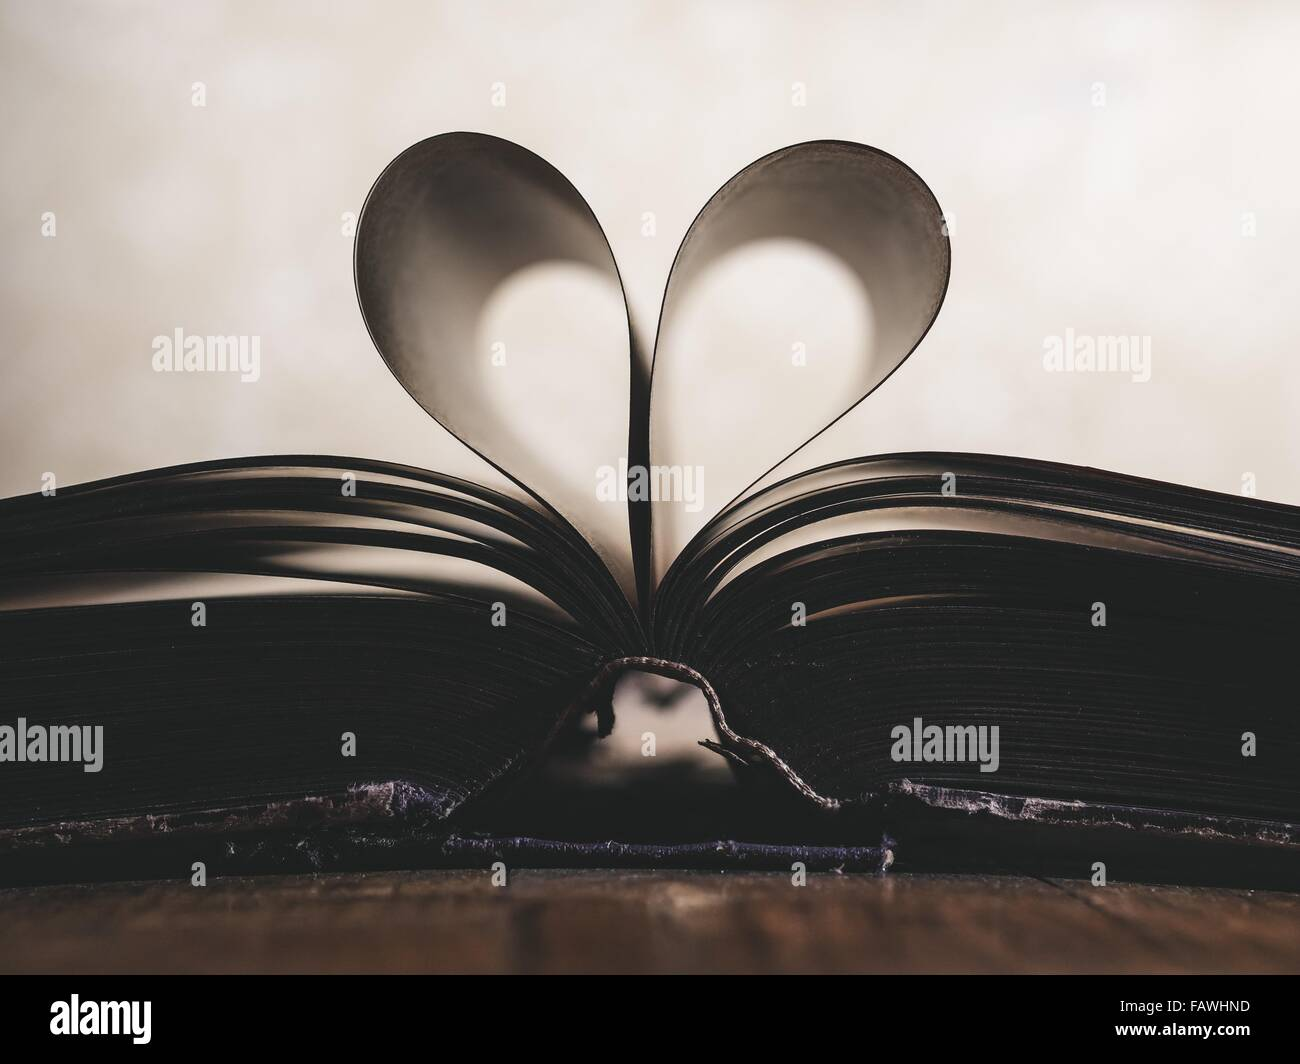 Heart shape - Stock Image